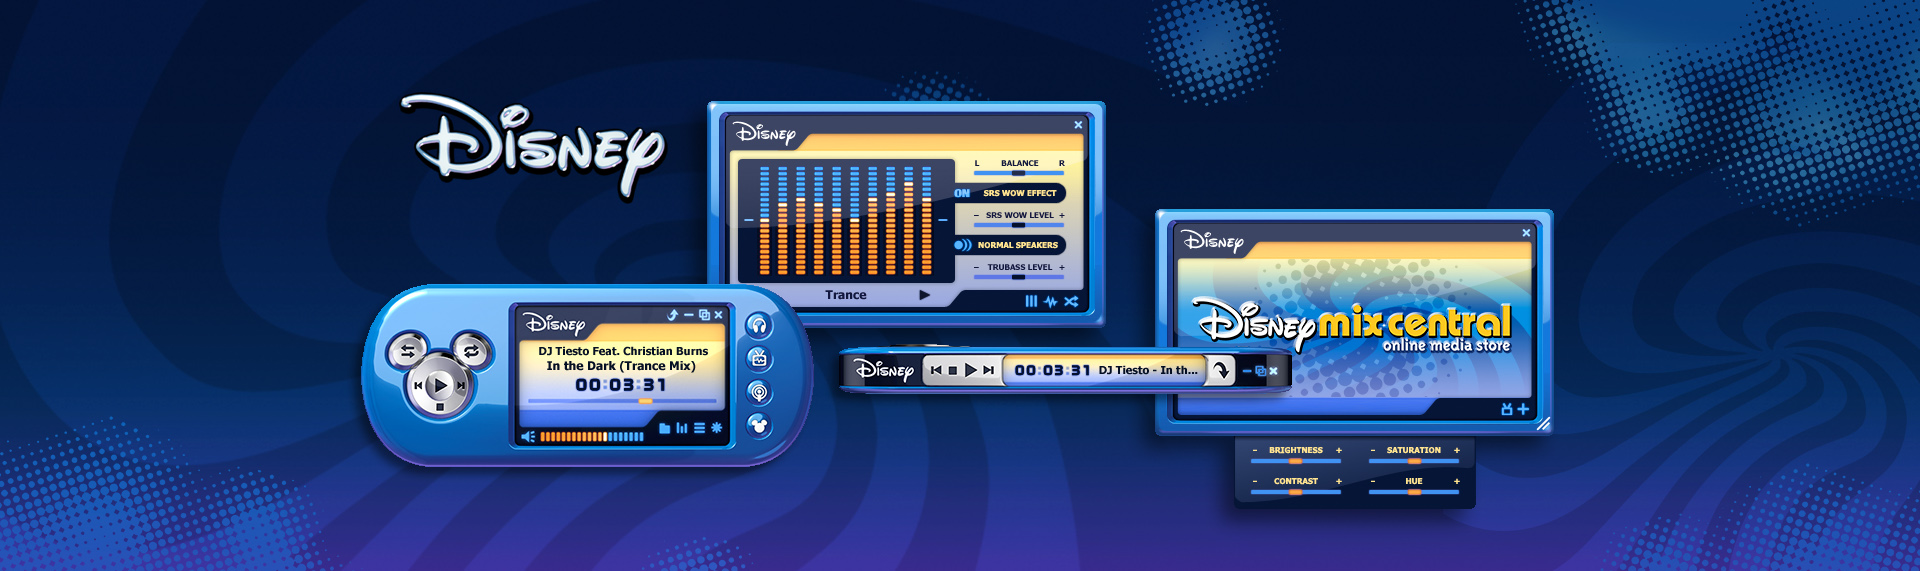 "Disney Mix Central  Client: The Walt Disney Company  The Skins Factory was contracted by Disney to create an animated Disney Mix Central-branded Windows Media Player 11 skin. Taking inspiration from Disney's ""real-world"" hardware player, Disney Mix Max, the The Skins Factory rendered a gorgeous companion to the Disney Mix Central store we designed with Disney. We broke the boundaries of 2D skins by creating functionality on more than just the front of the player skin. Flip it on its side and you have a micro player."